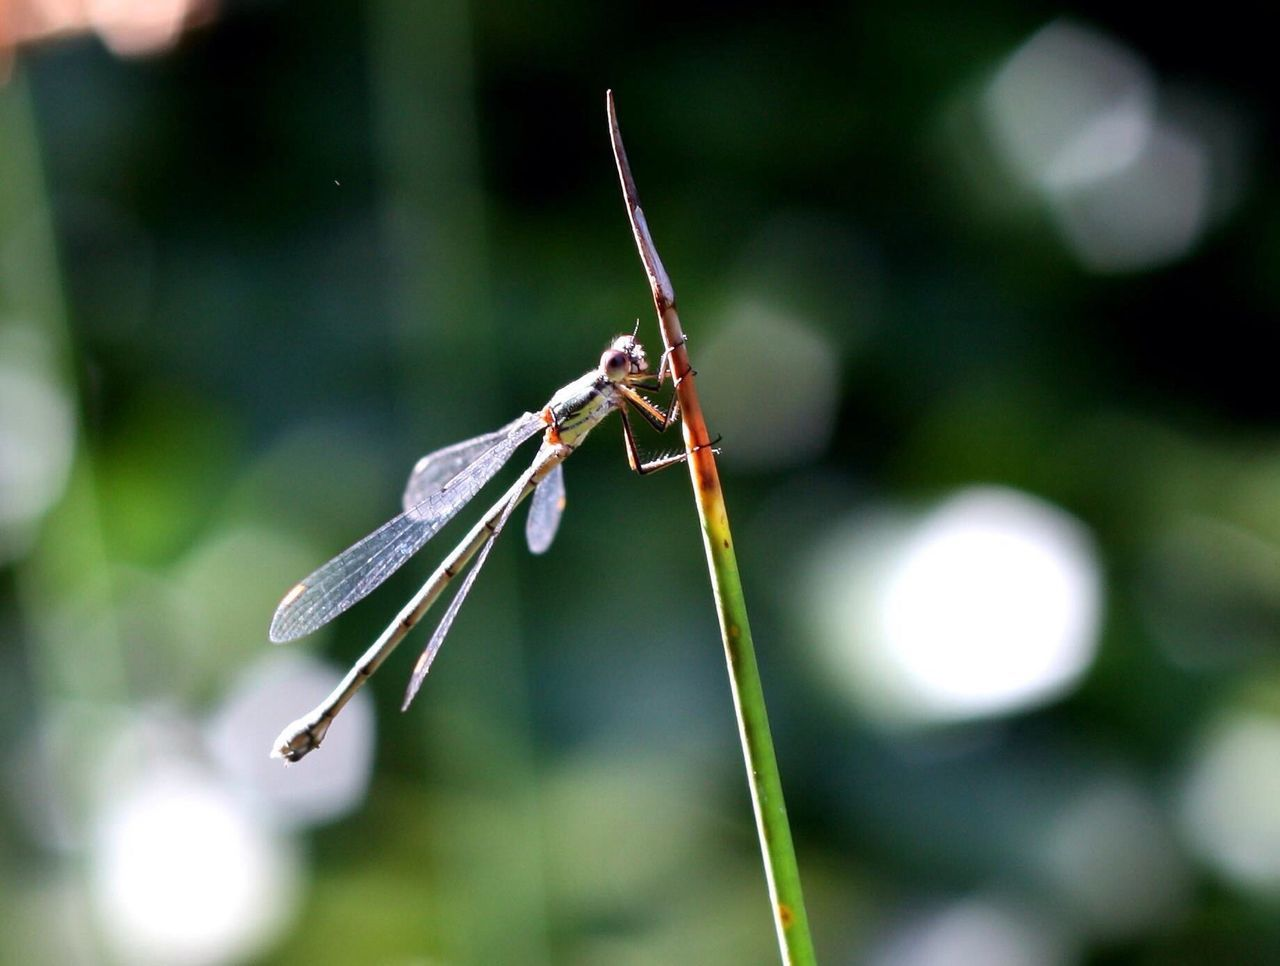 invertebrate, focus on foreground, animal themes, animal, insect, close-up, animal wildlife, plant, one animal, animals in the wild, nature, day, no people, growth, outdoors, green color, plant stem, dragonfly, beauty in nature, animal wing, blade of grass